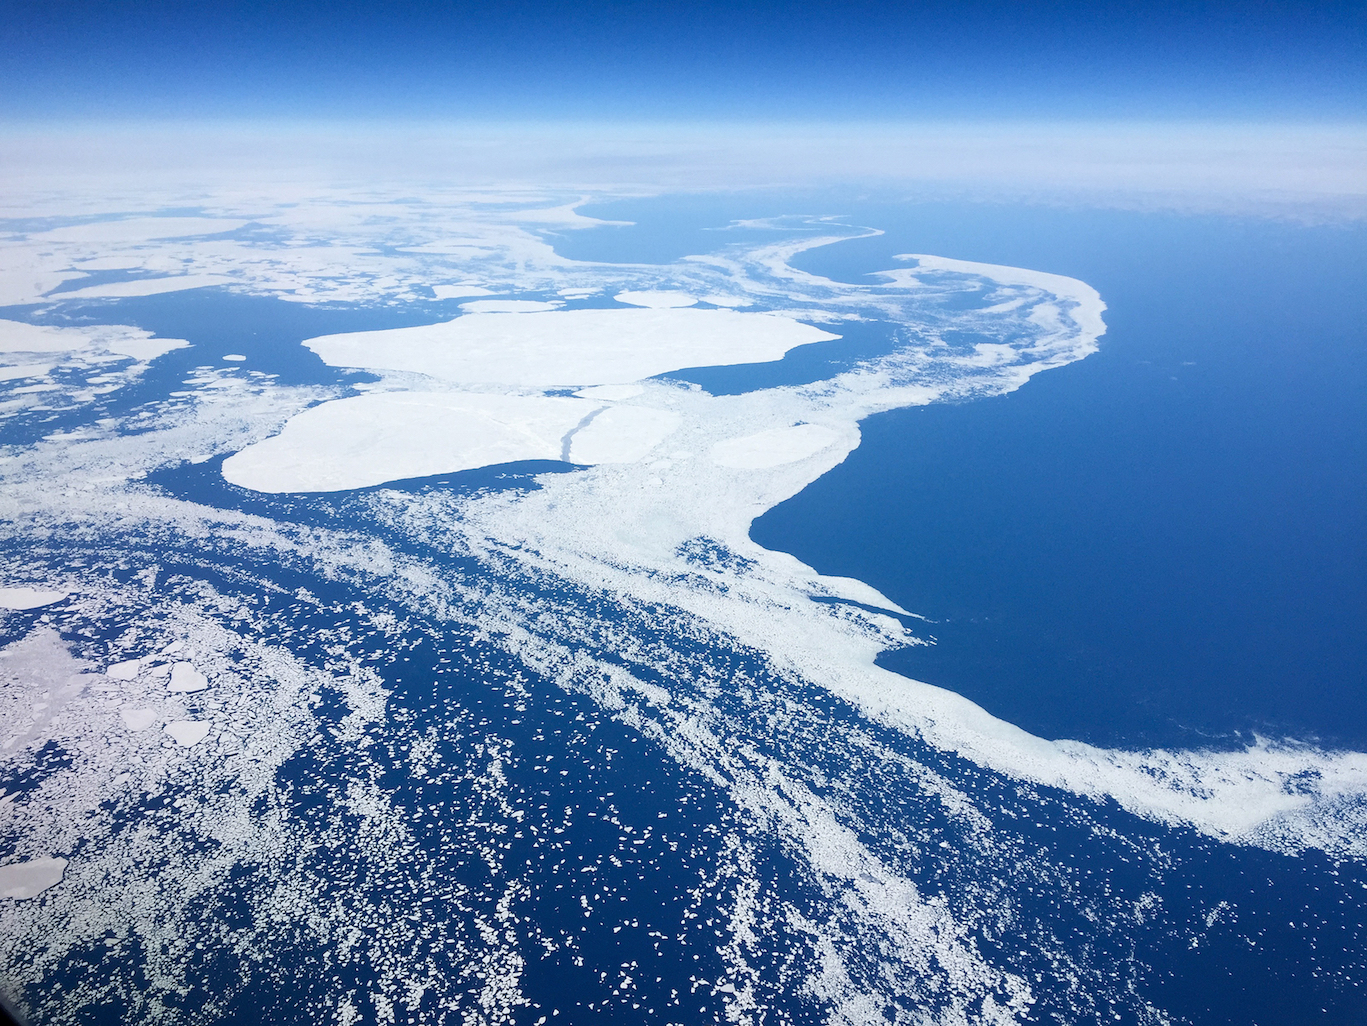 A new study shows Greenland's ice caps have been losing mass since 1997. Increases in meltwater run-off range from 17% to 74% in the northernmost area.